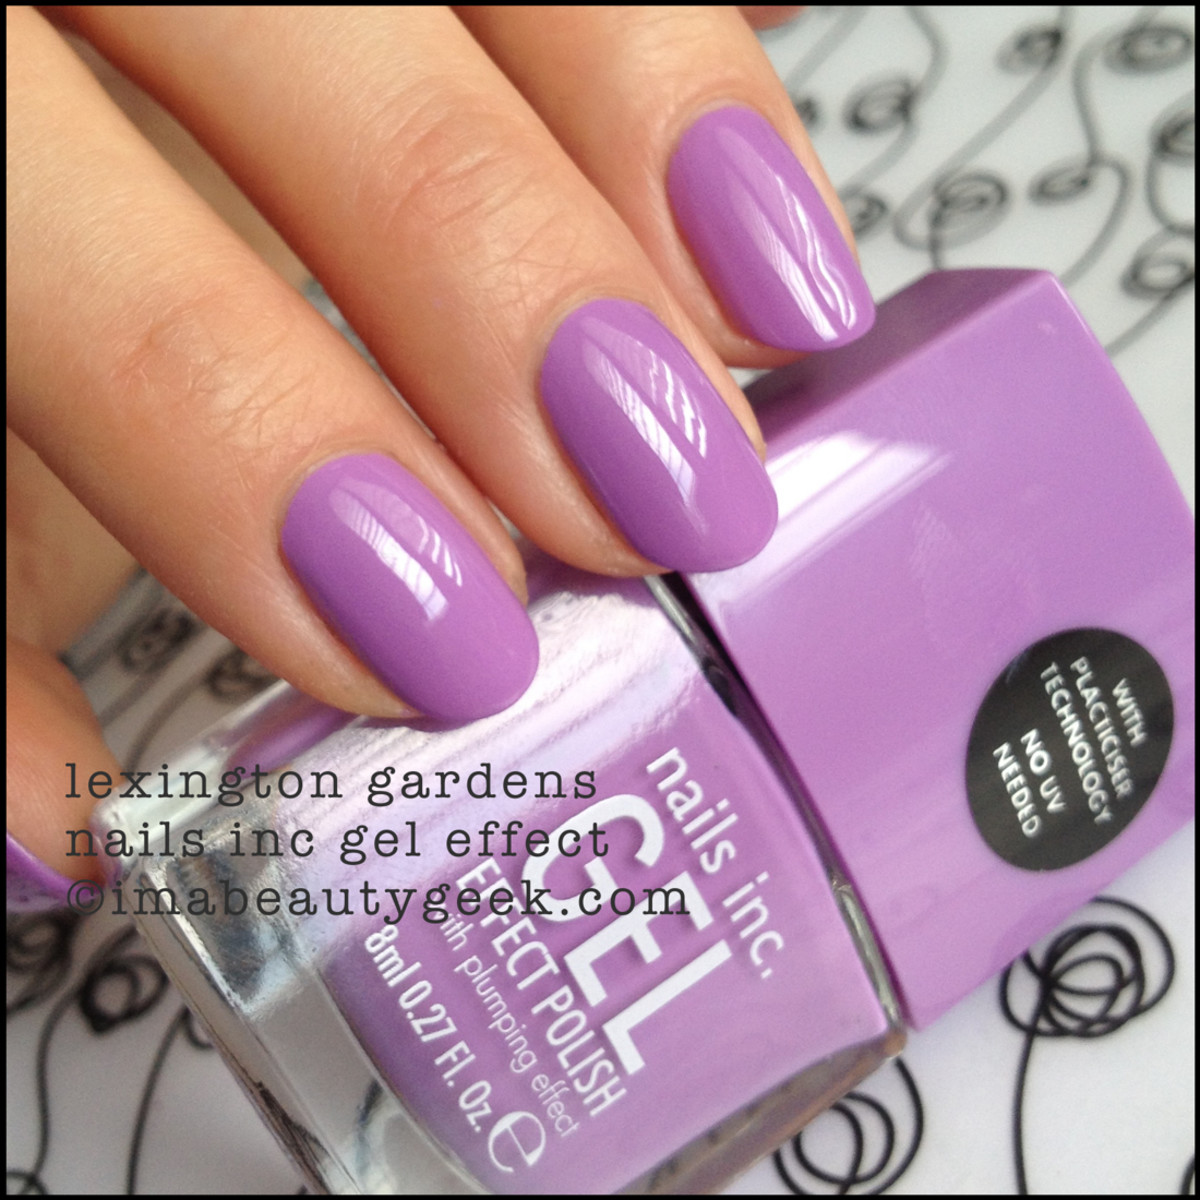 Nails Inc Lexington Gardens Gel Effect Polish Manigeek Swatch